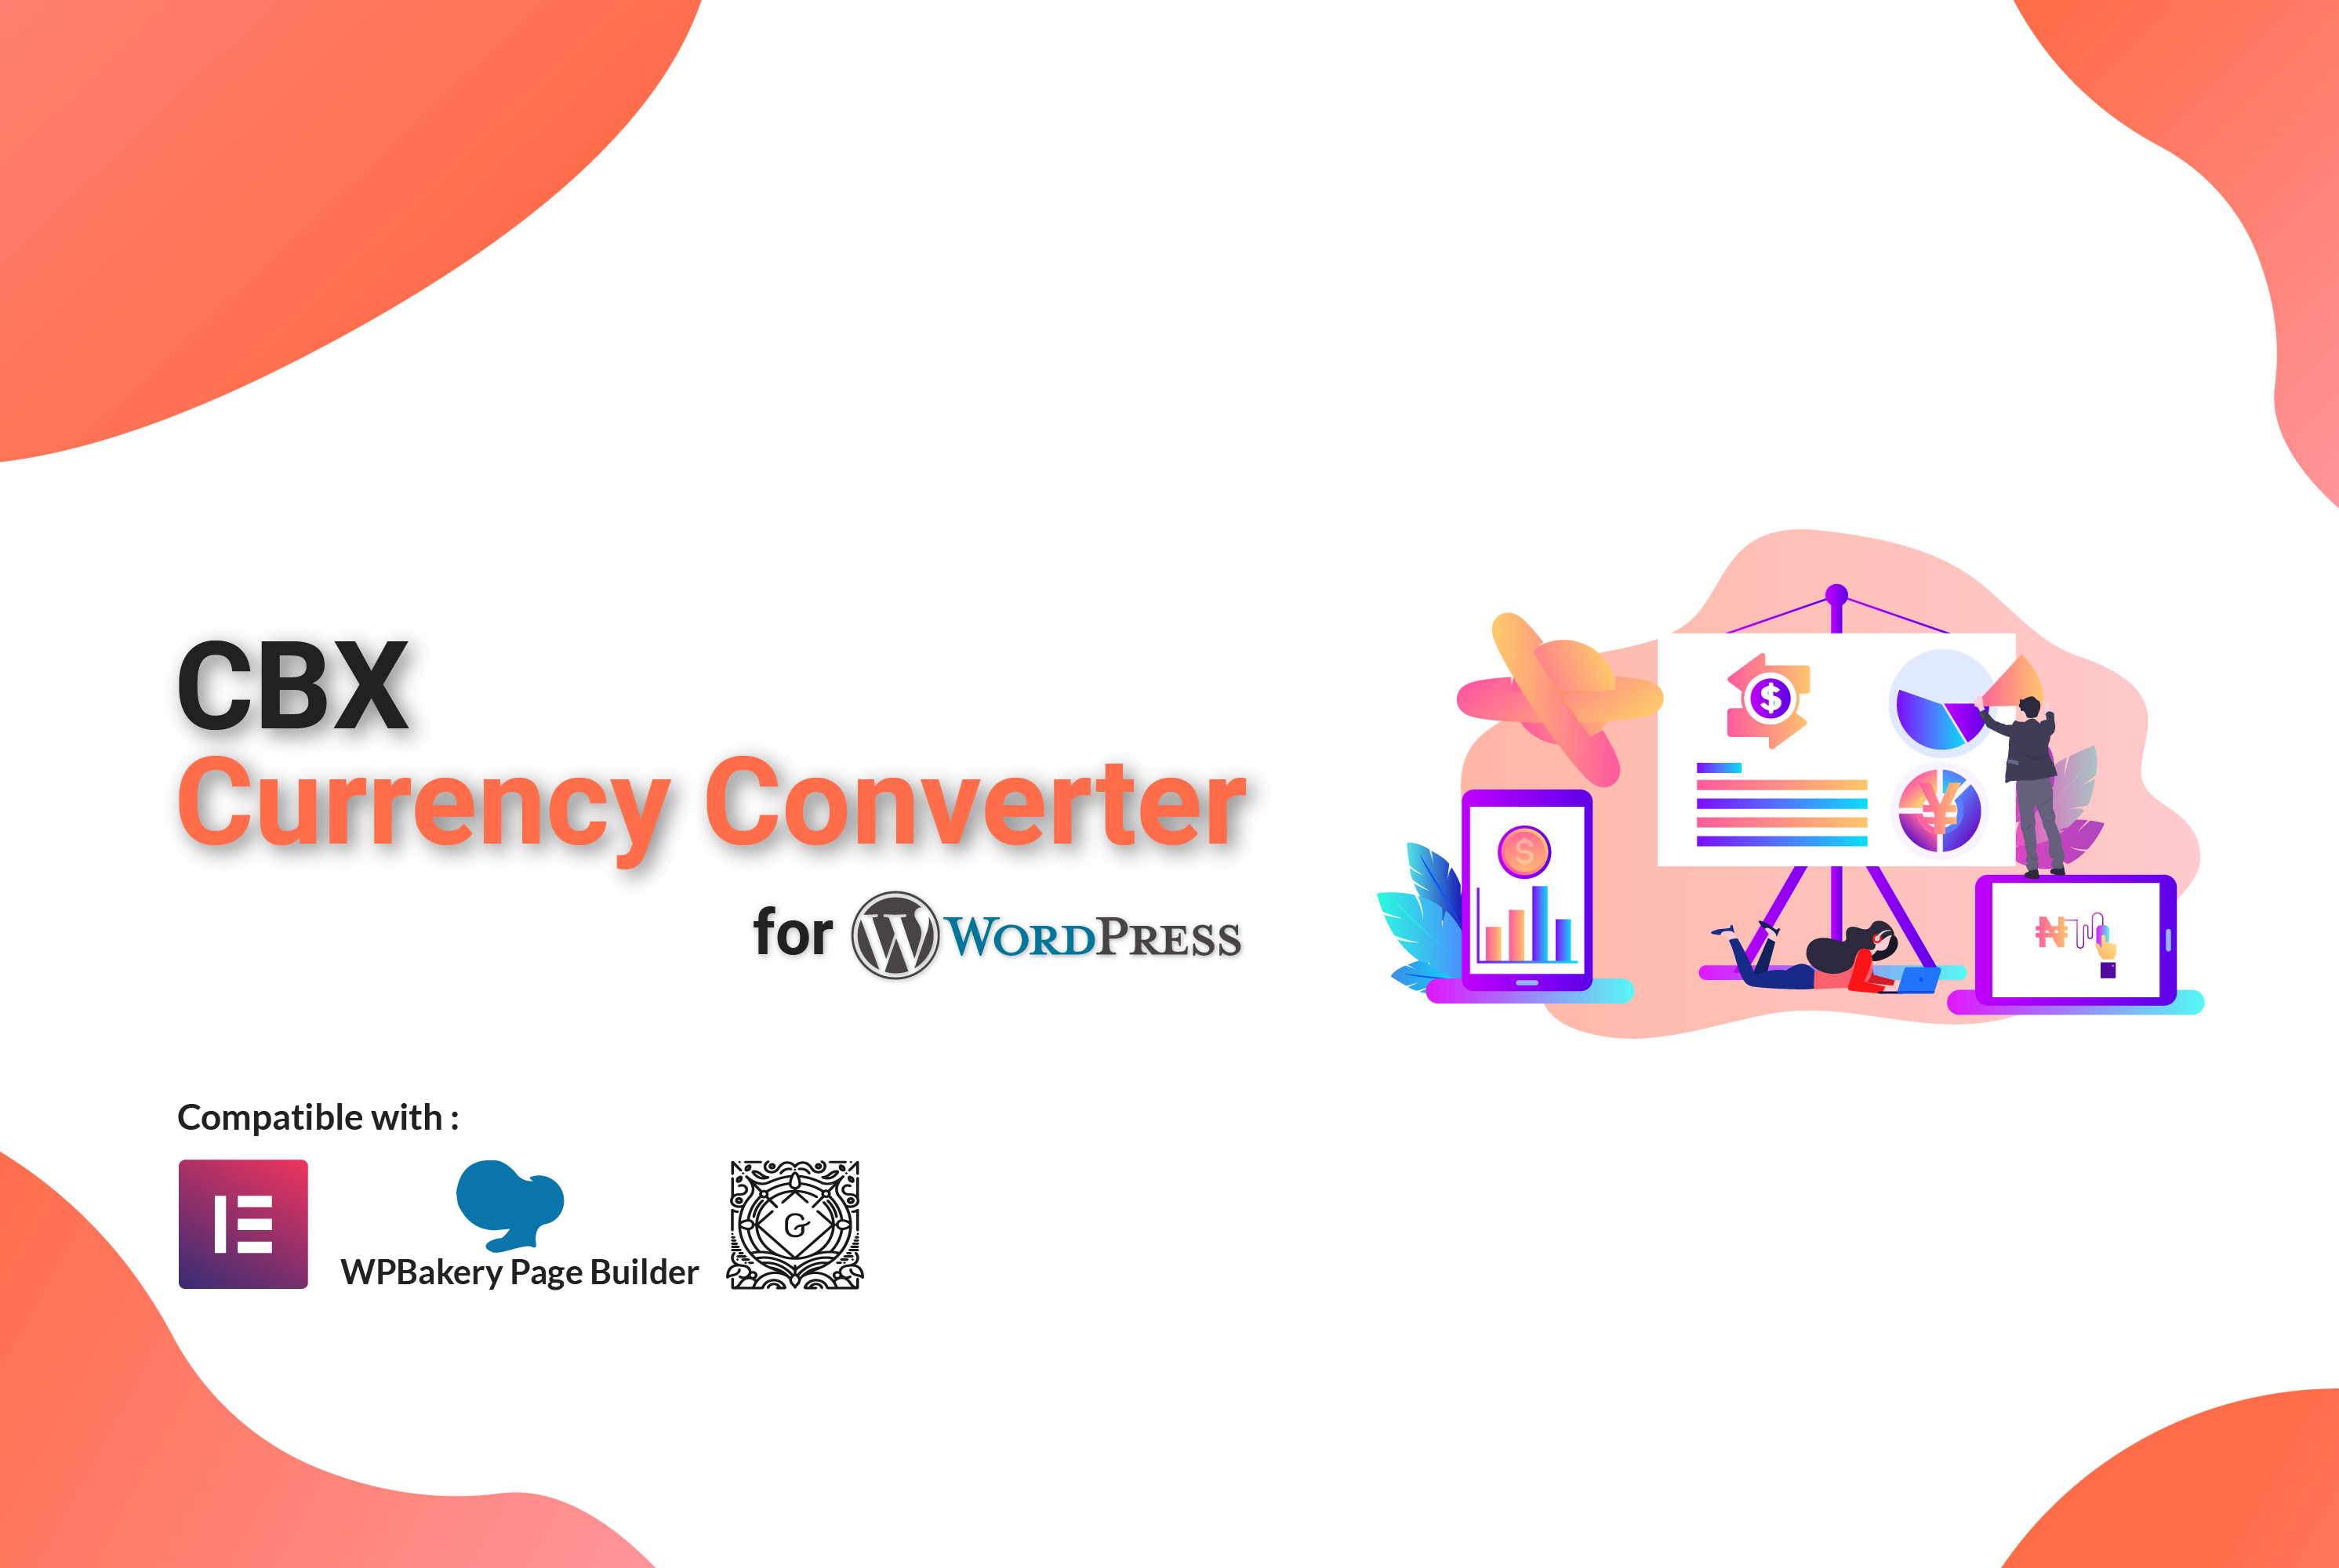 cbx currency converter for WordPress